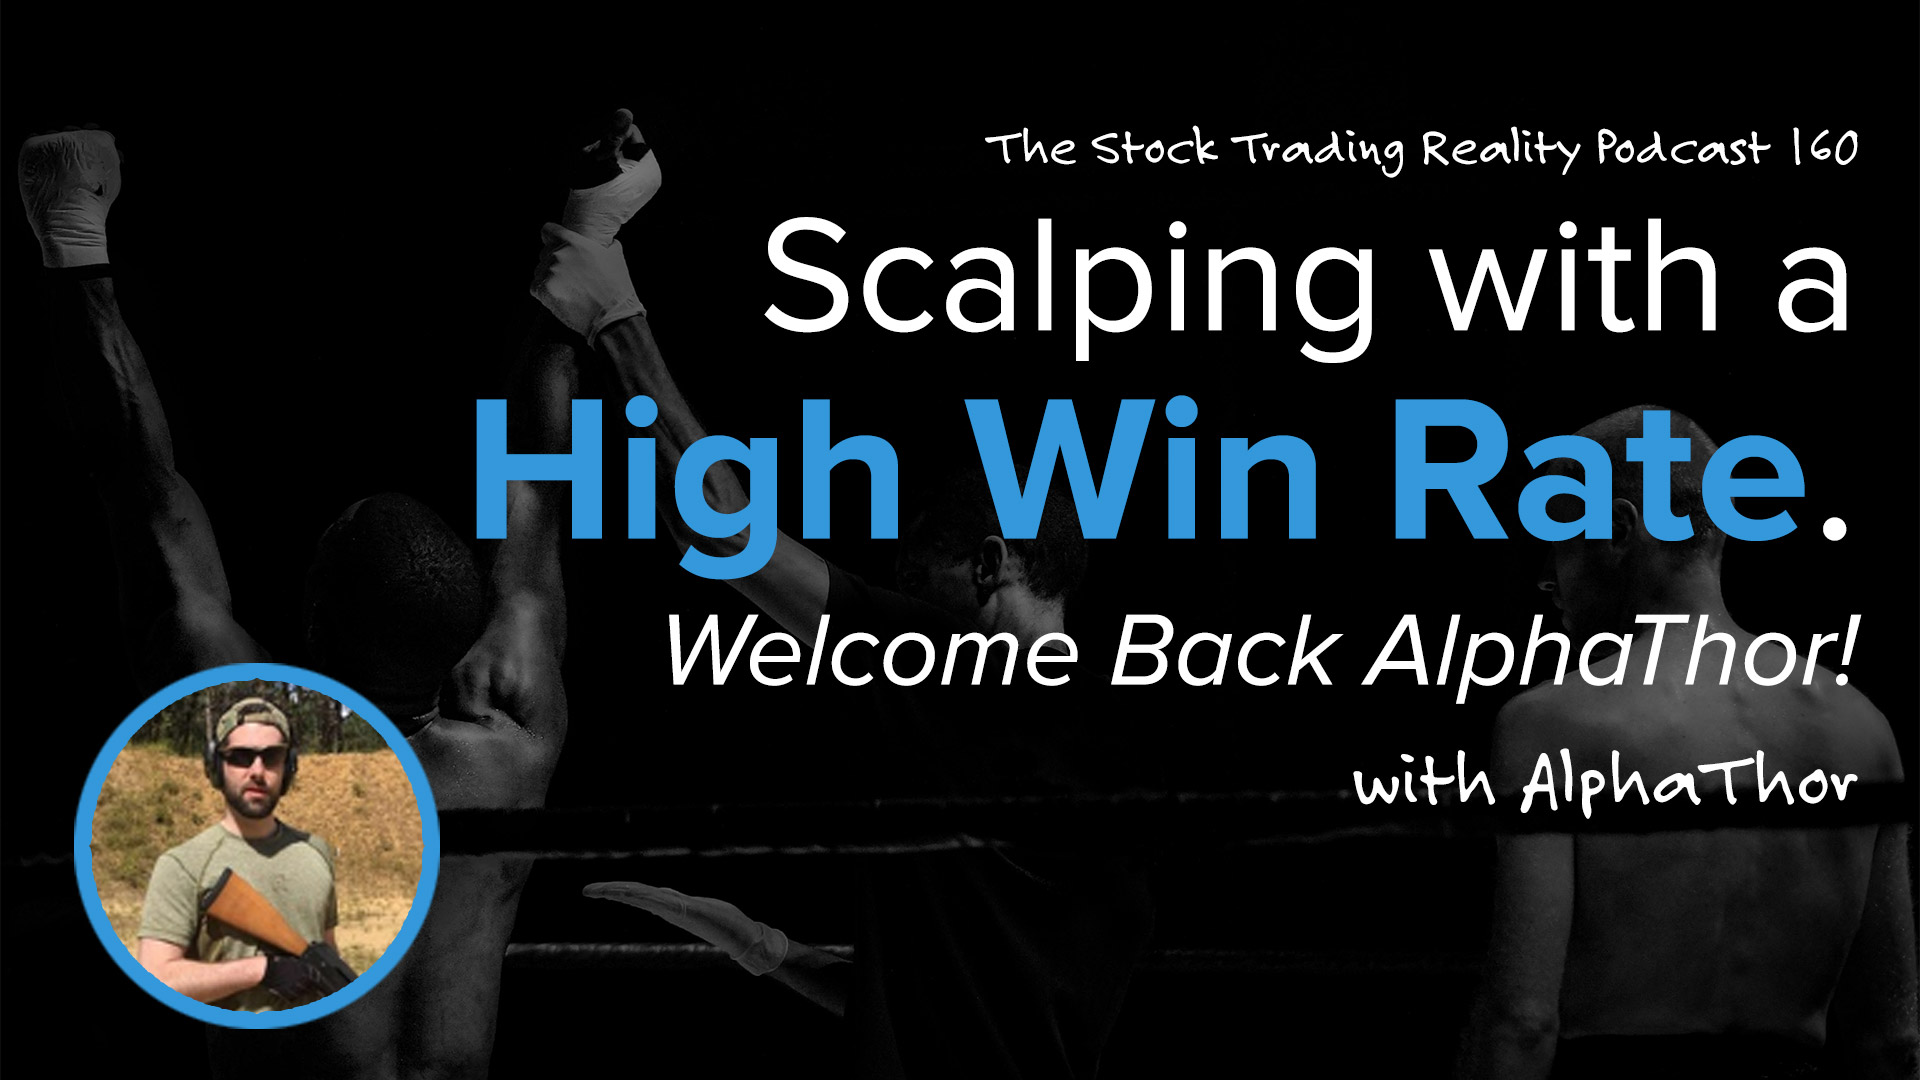 STR 160: Scalping with a High Win Rate. Welcome Back AlphaThor!